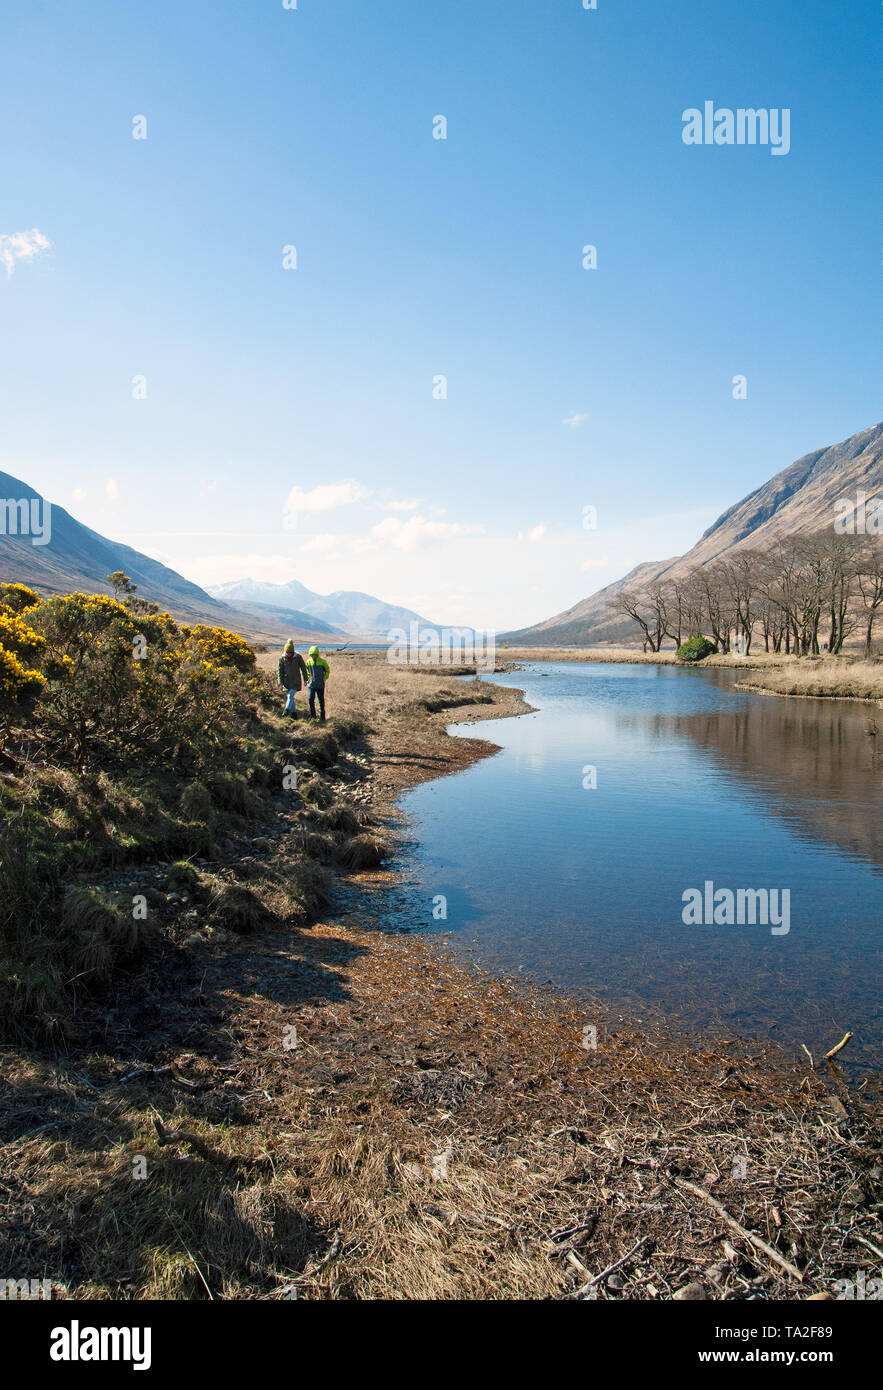 Hikers alongside the River Etive which runs through Glen Etive reaching Loch Etive at Gualachulain. In the distance is snowcapped Ben Cruachan. - Stock Image